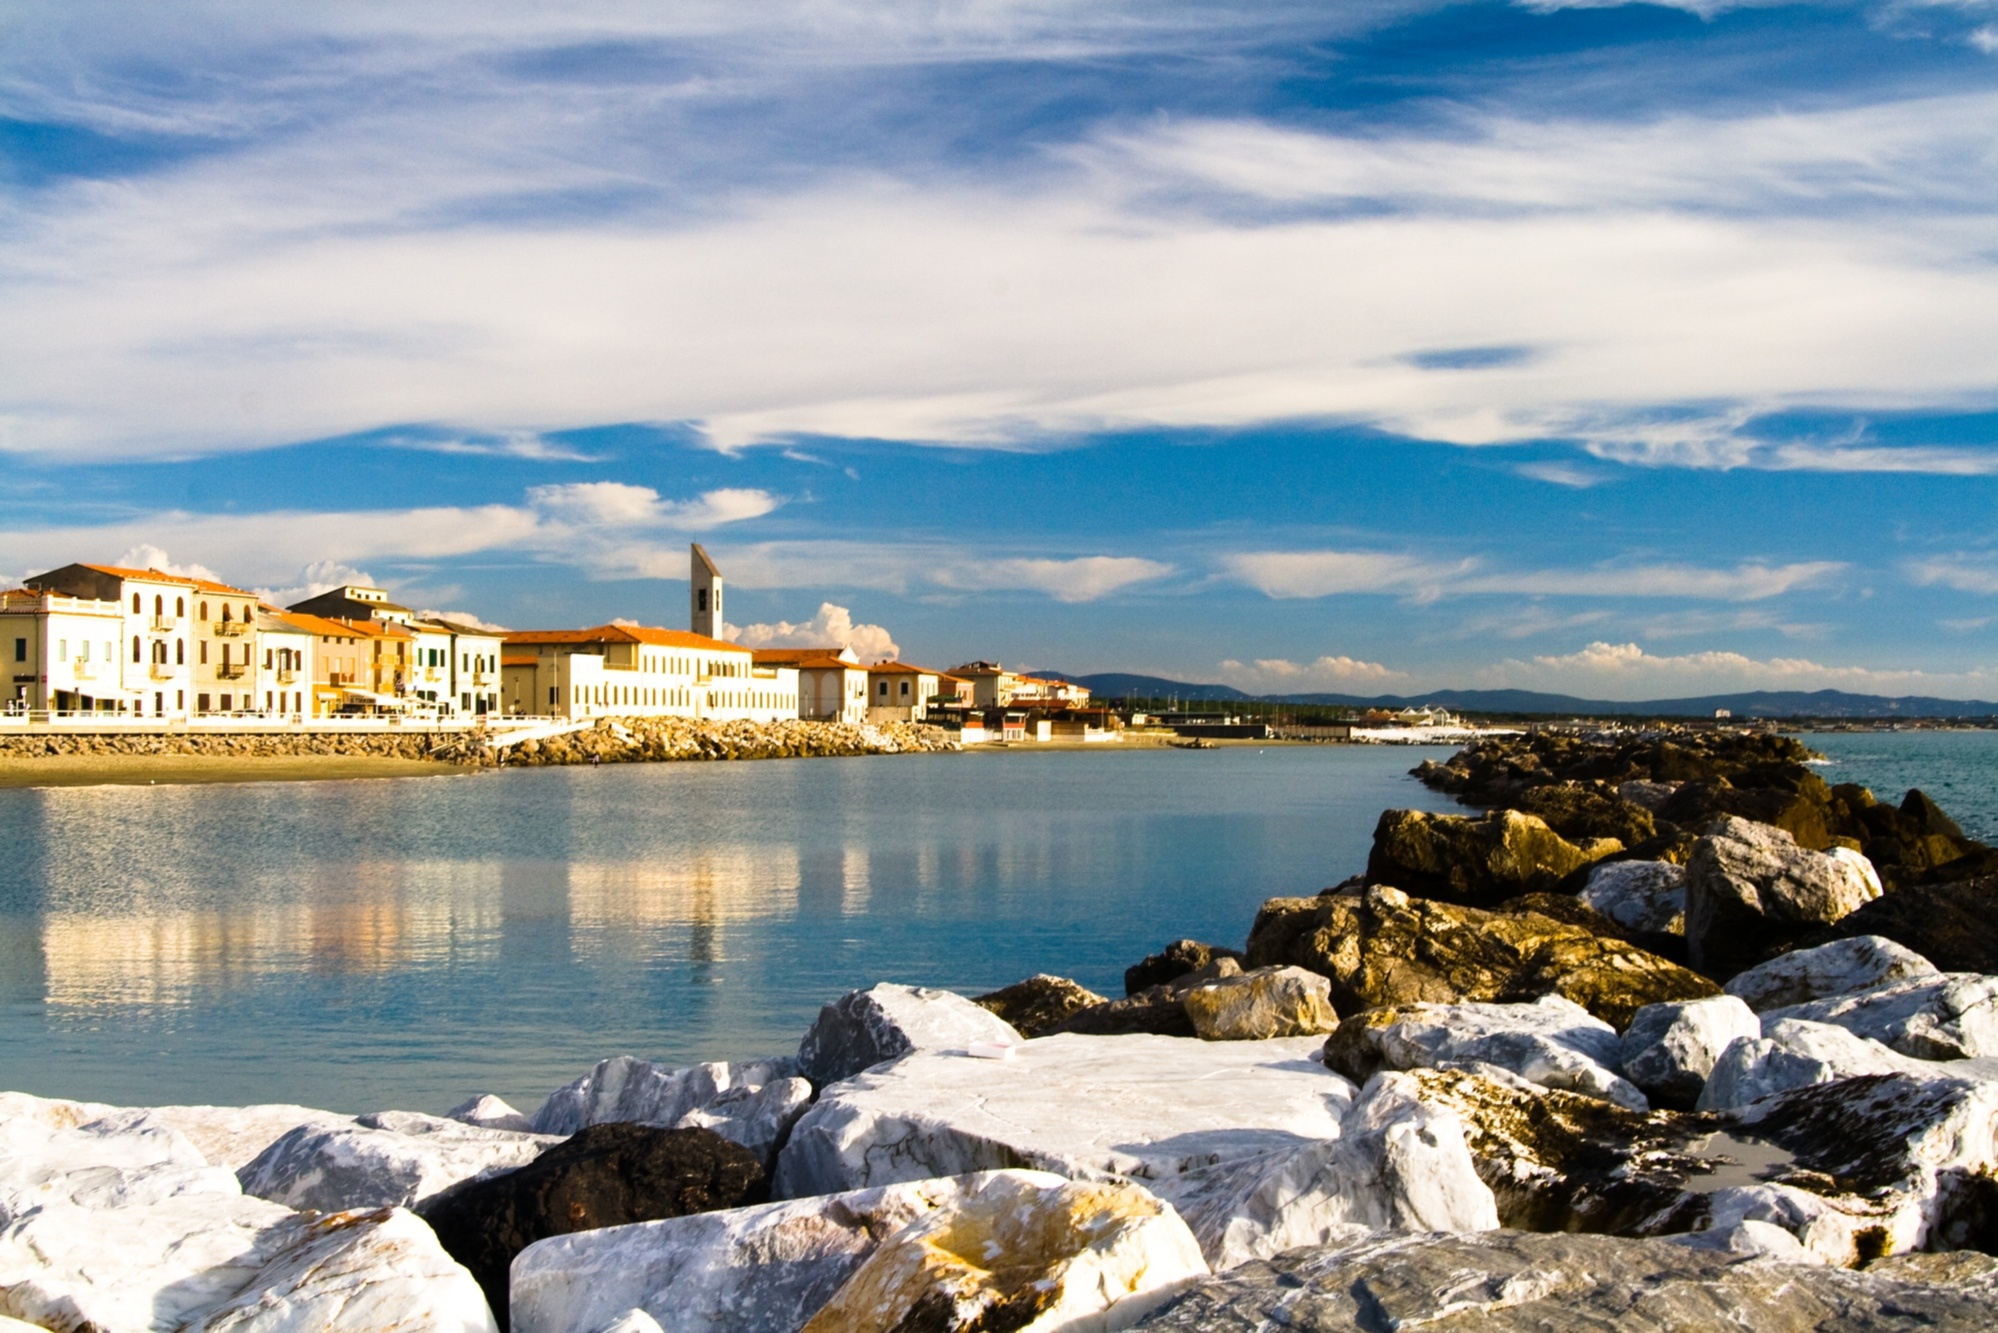 Marina Di Pisa A Beach Town Not Far From The Leaning Tower